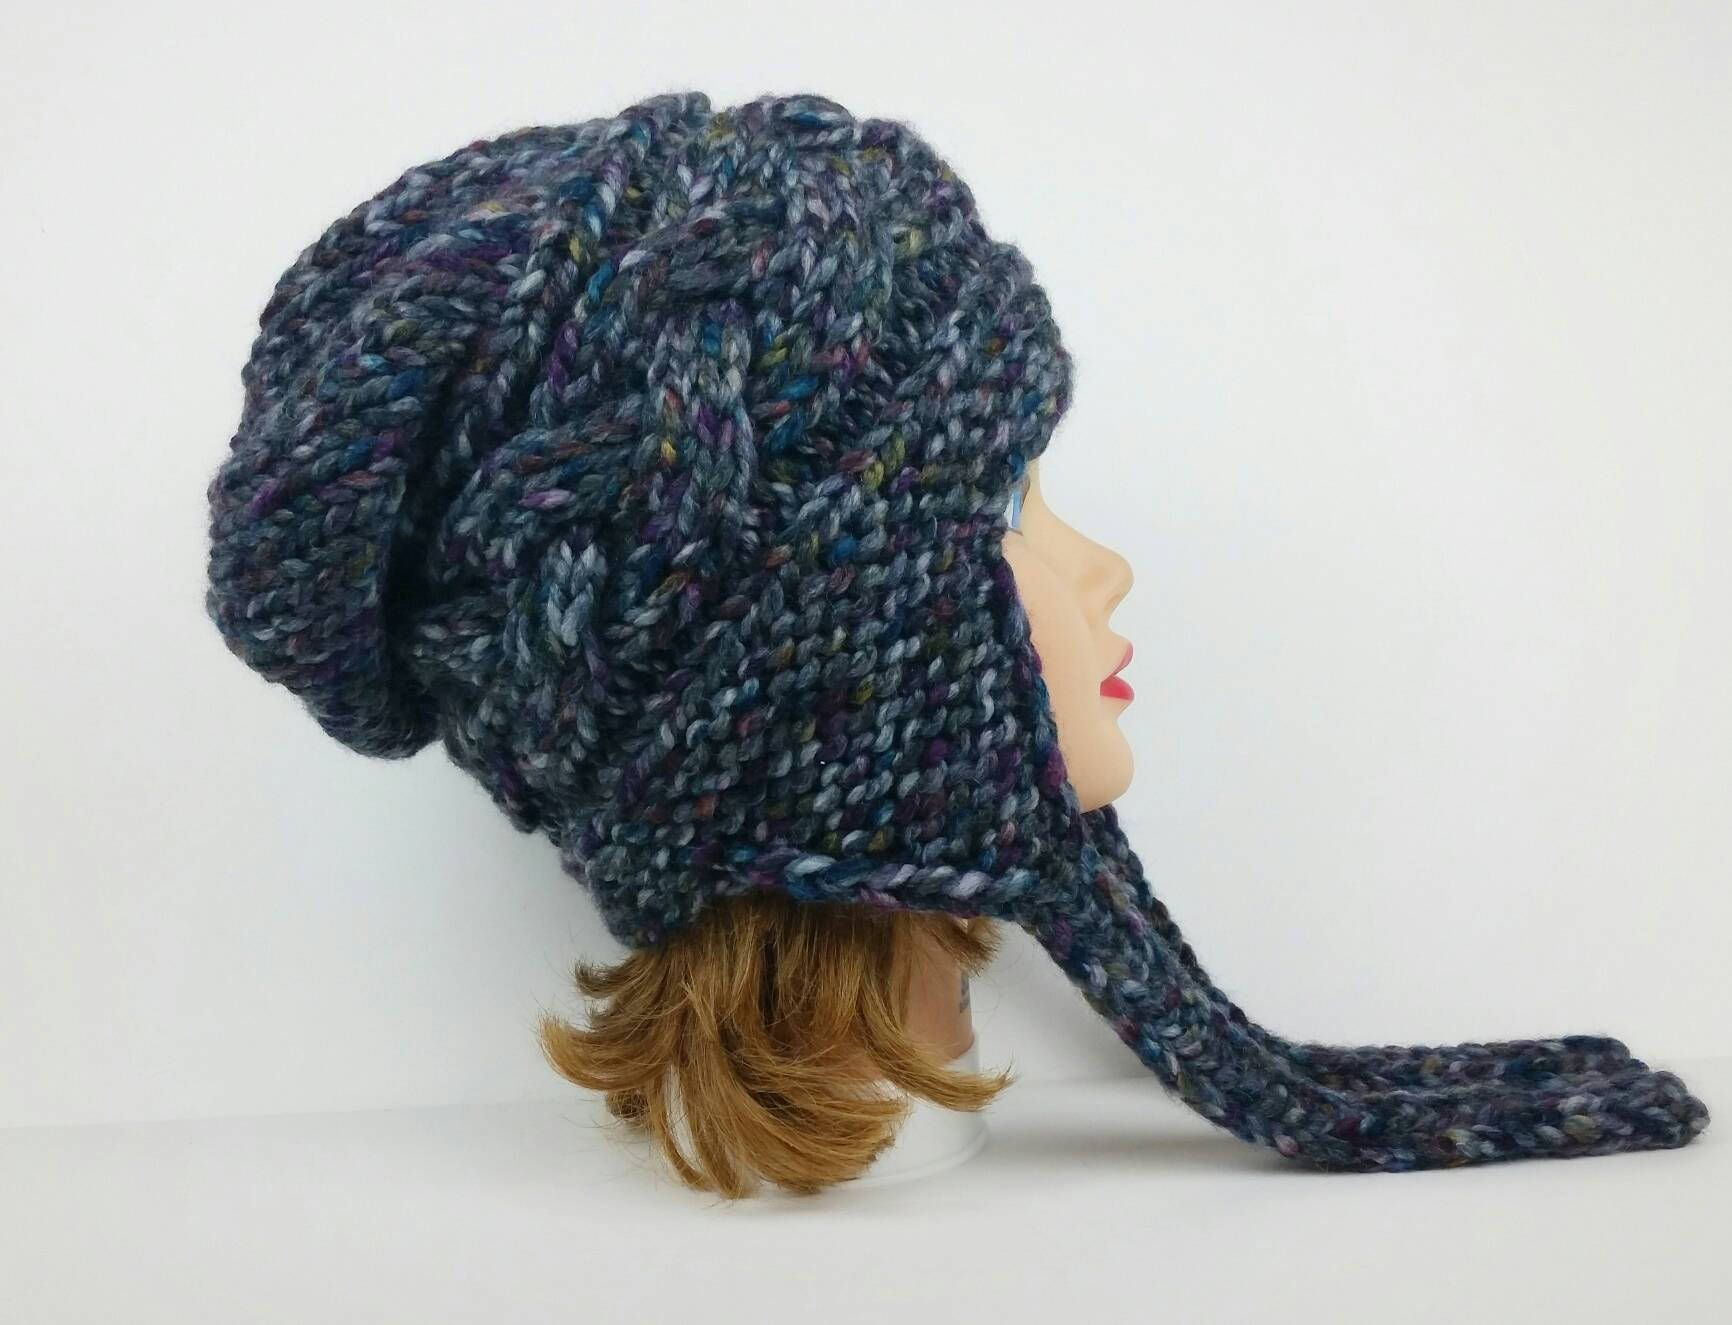 Ear Flap Hat - Women's Hat With Ear Flaps - Cable Knit Hat ...